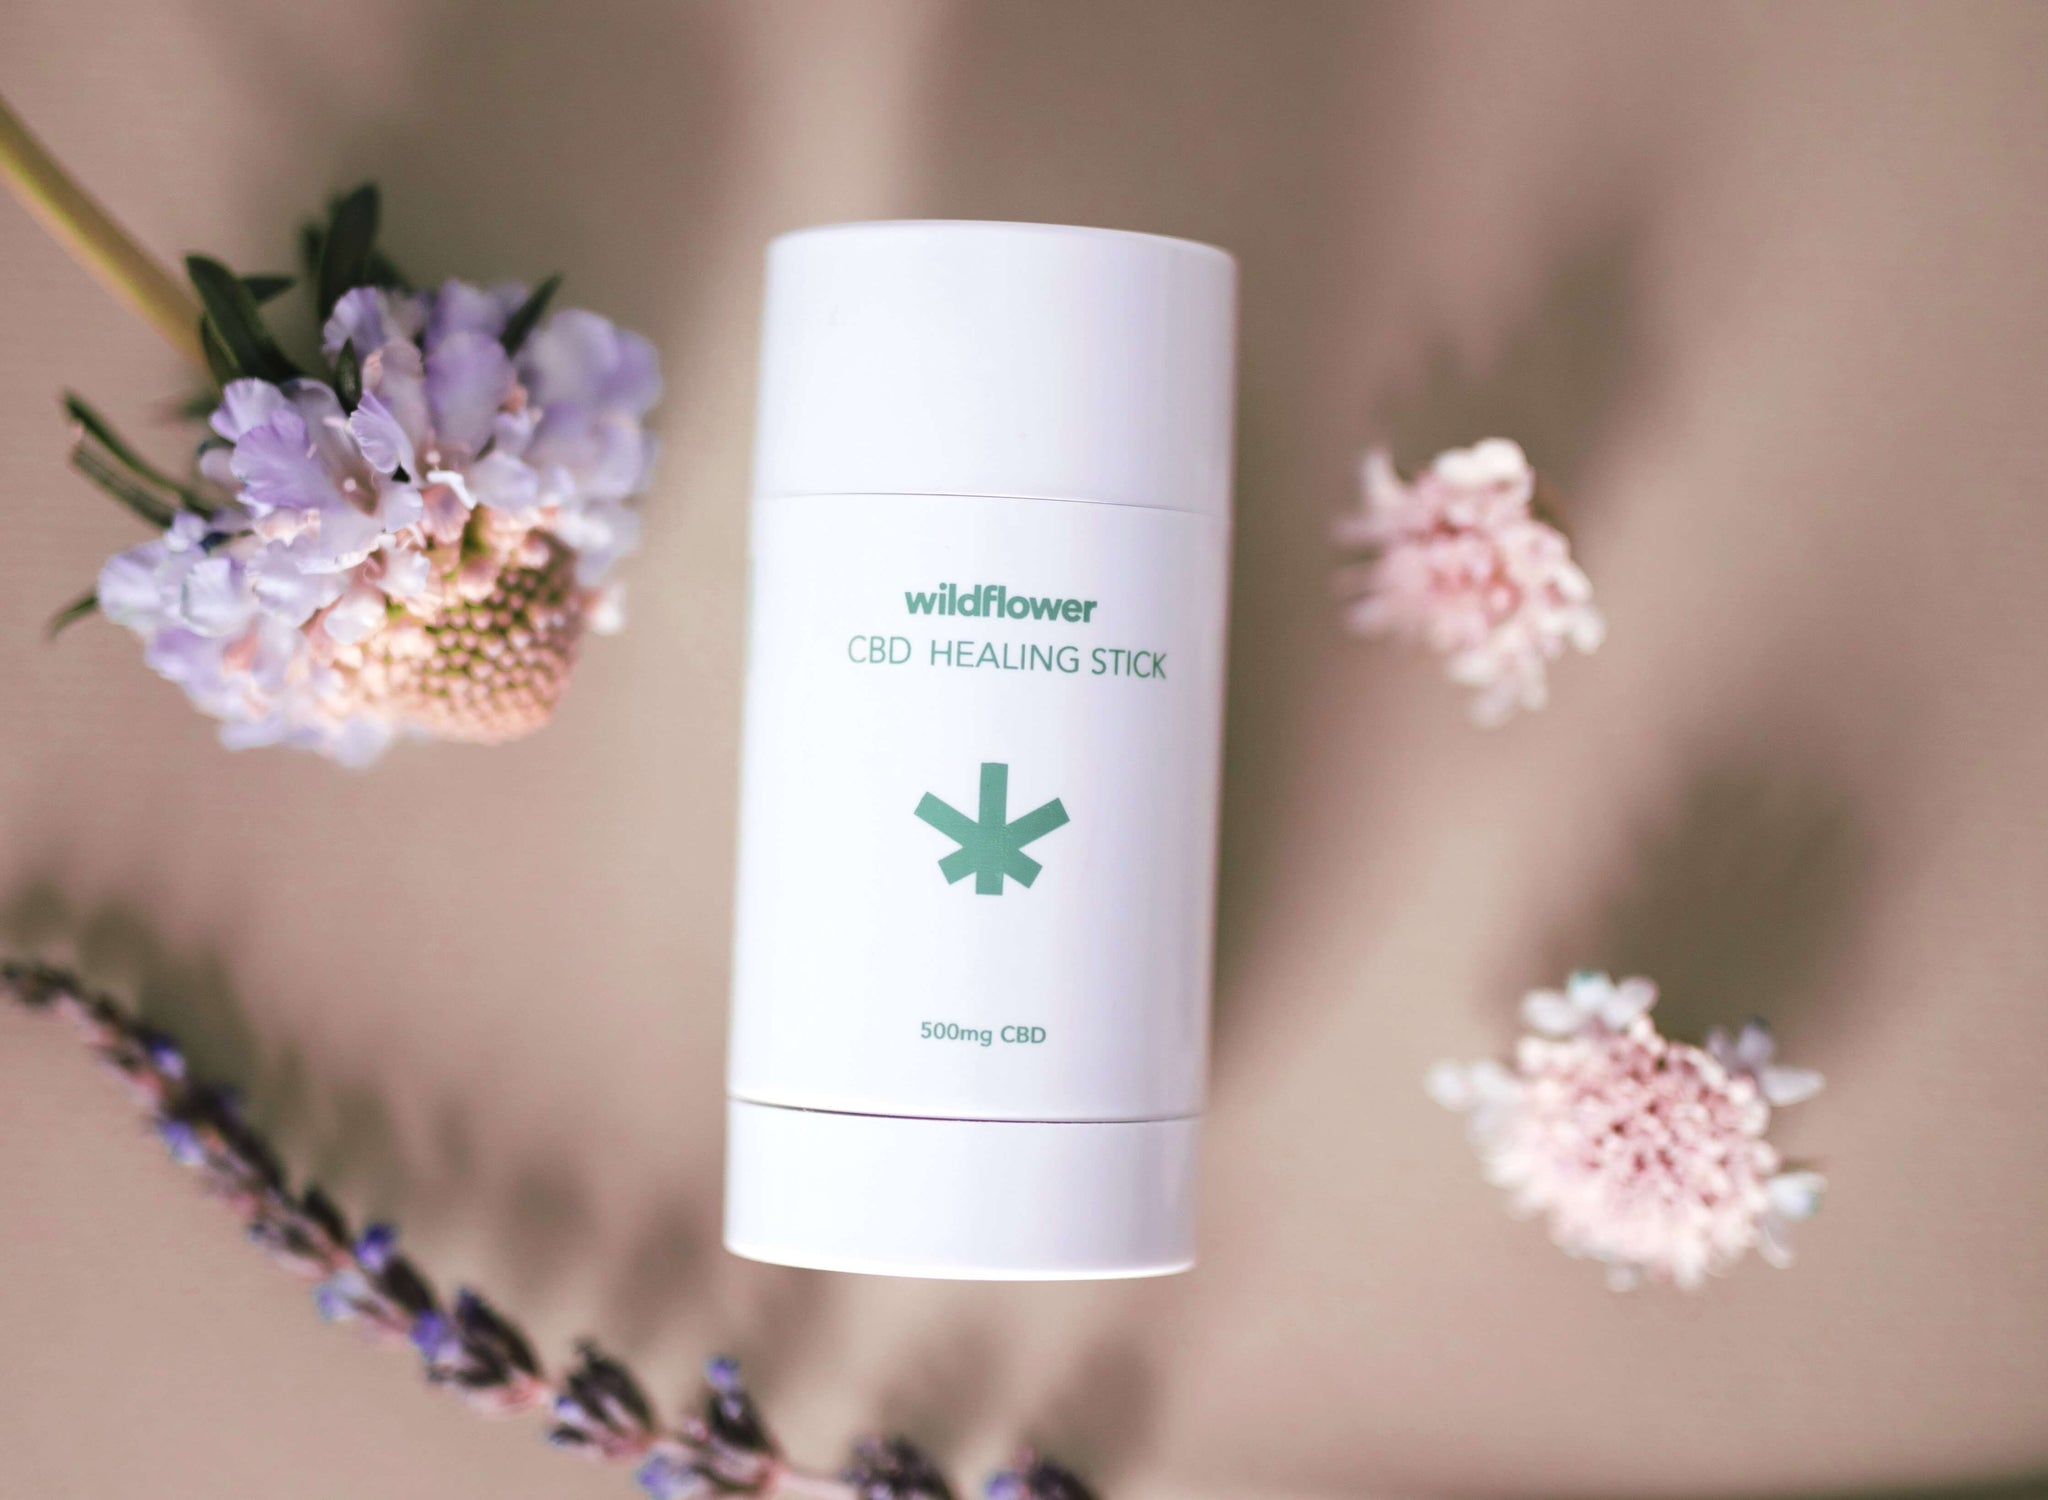 Kate Hudson shared her favorite CBD product and it's Wildflower's Healing Stick